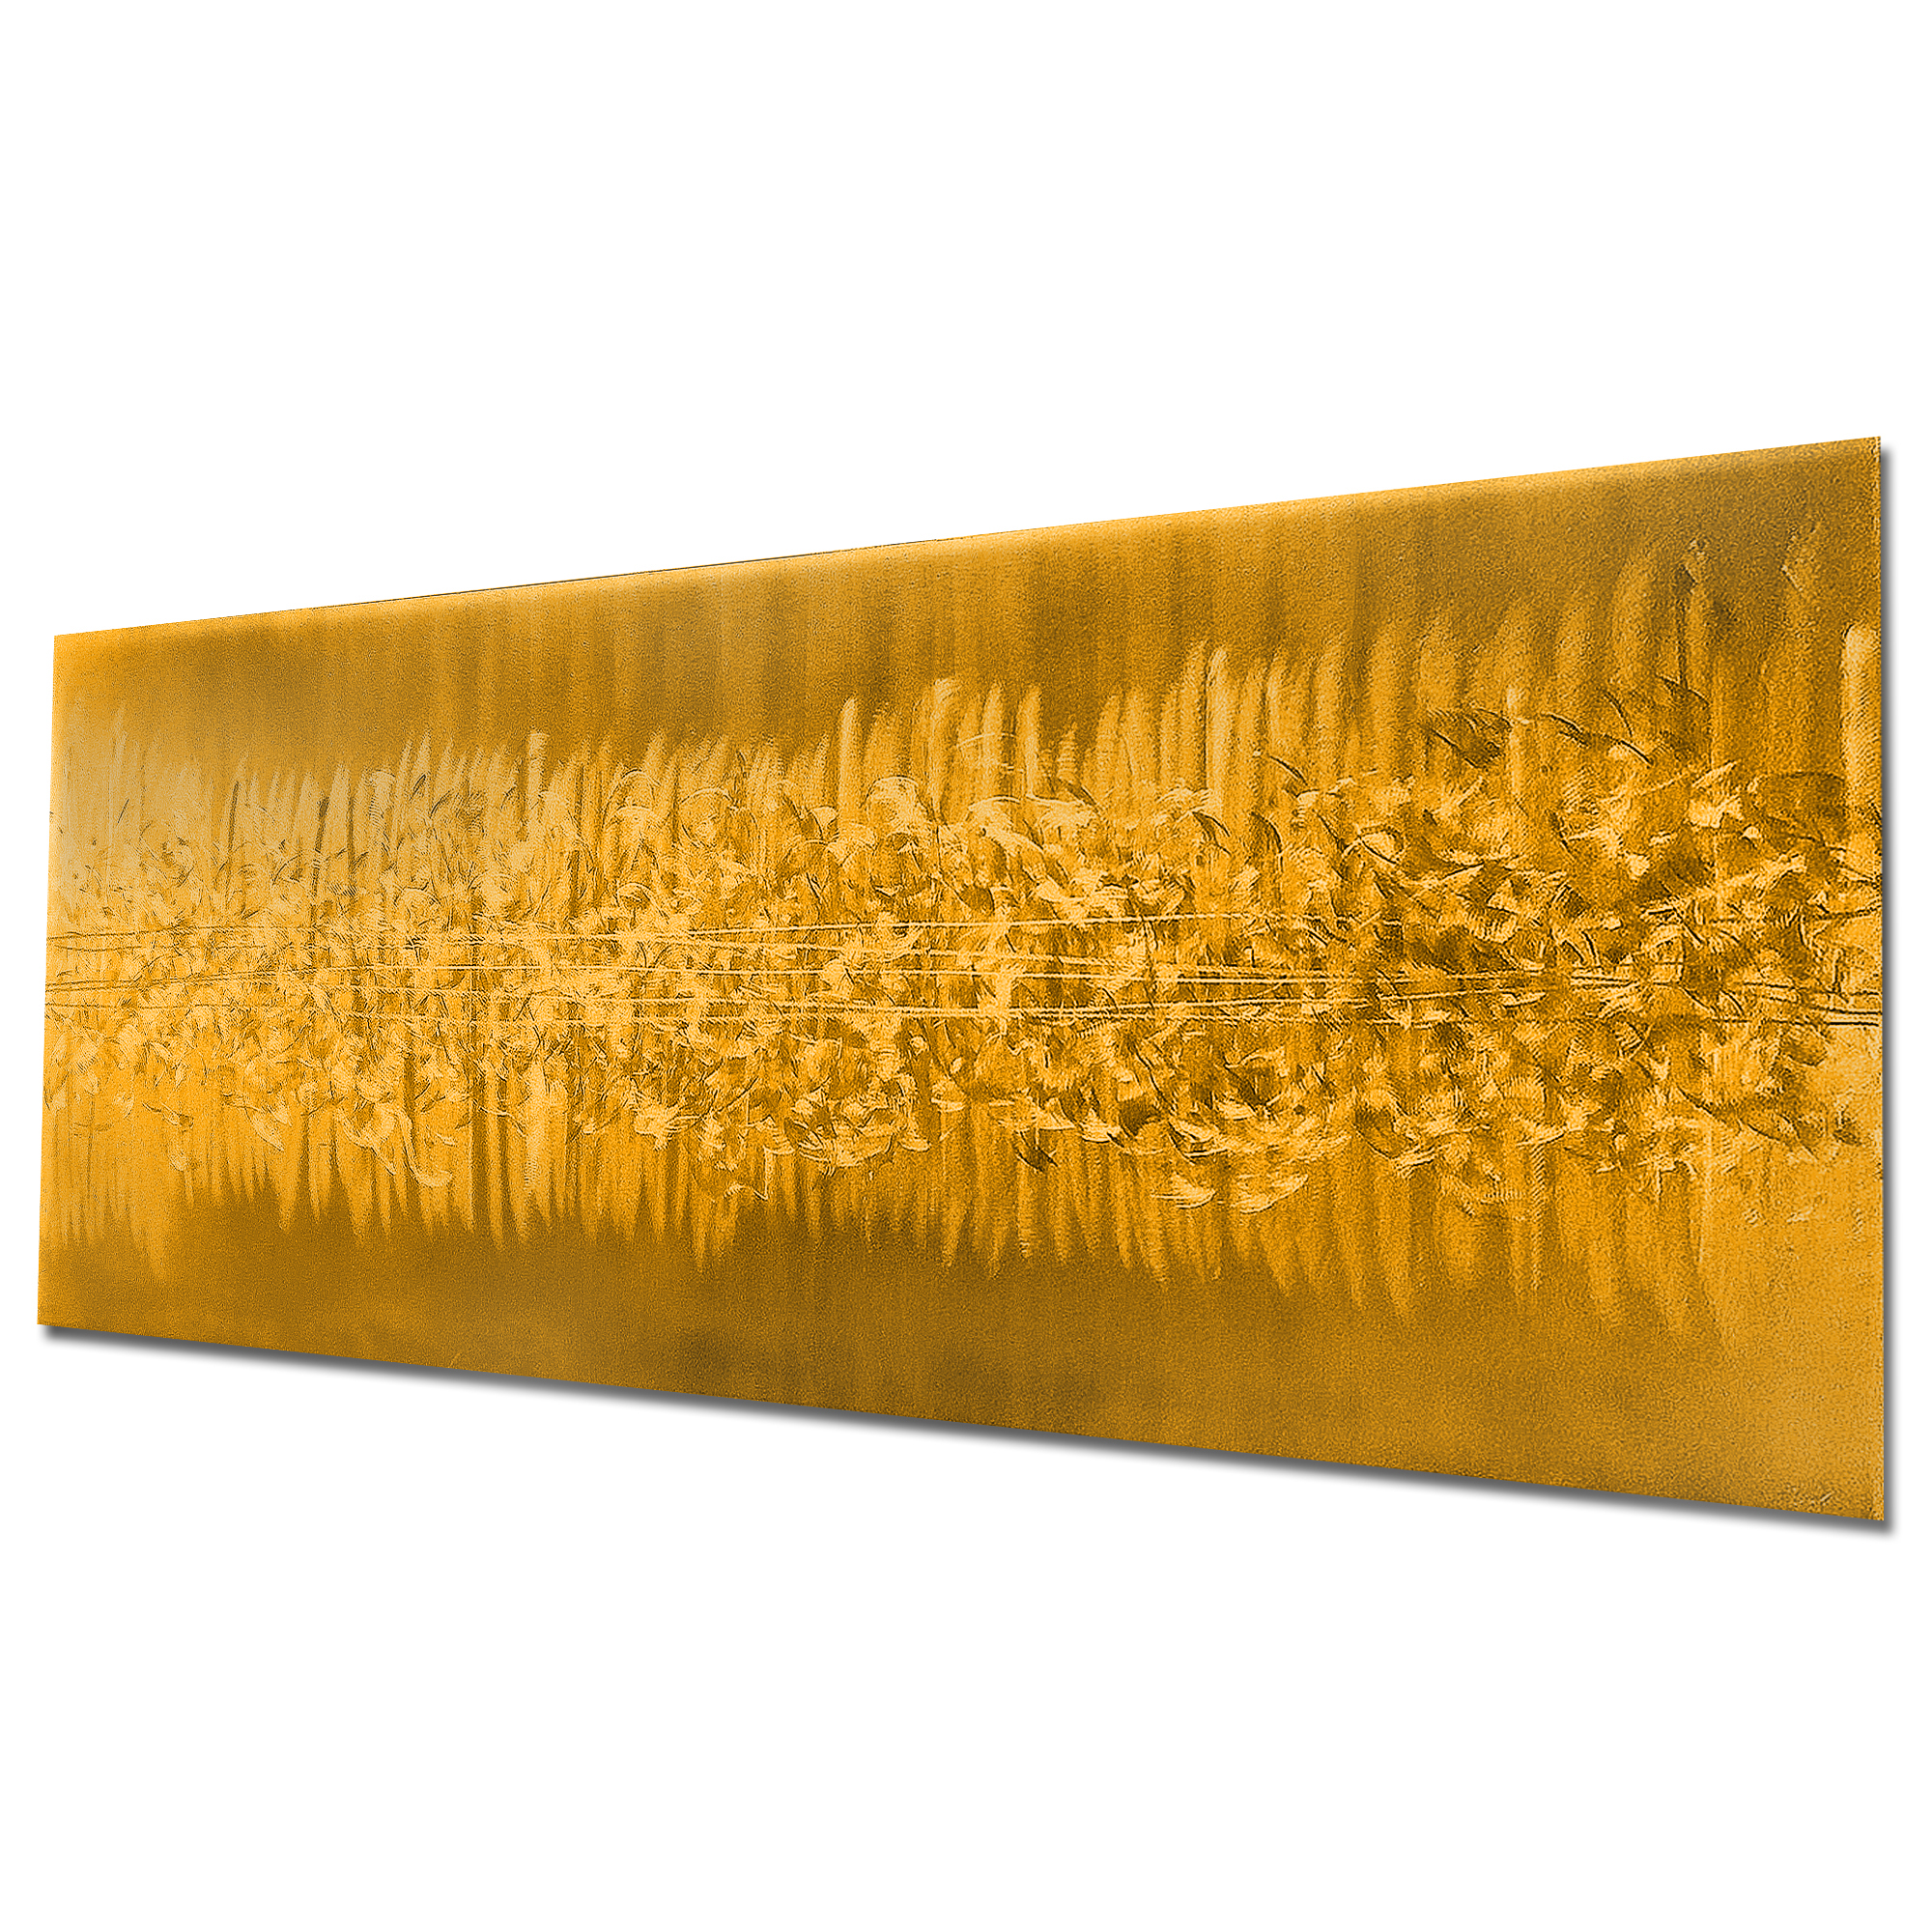 Static Gold by Helena Martin - Original Abstract Art on Ground and Painted Metal - Image 3